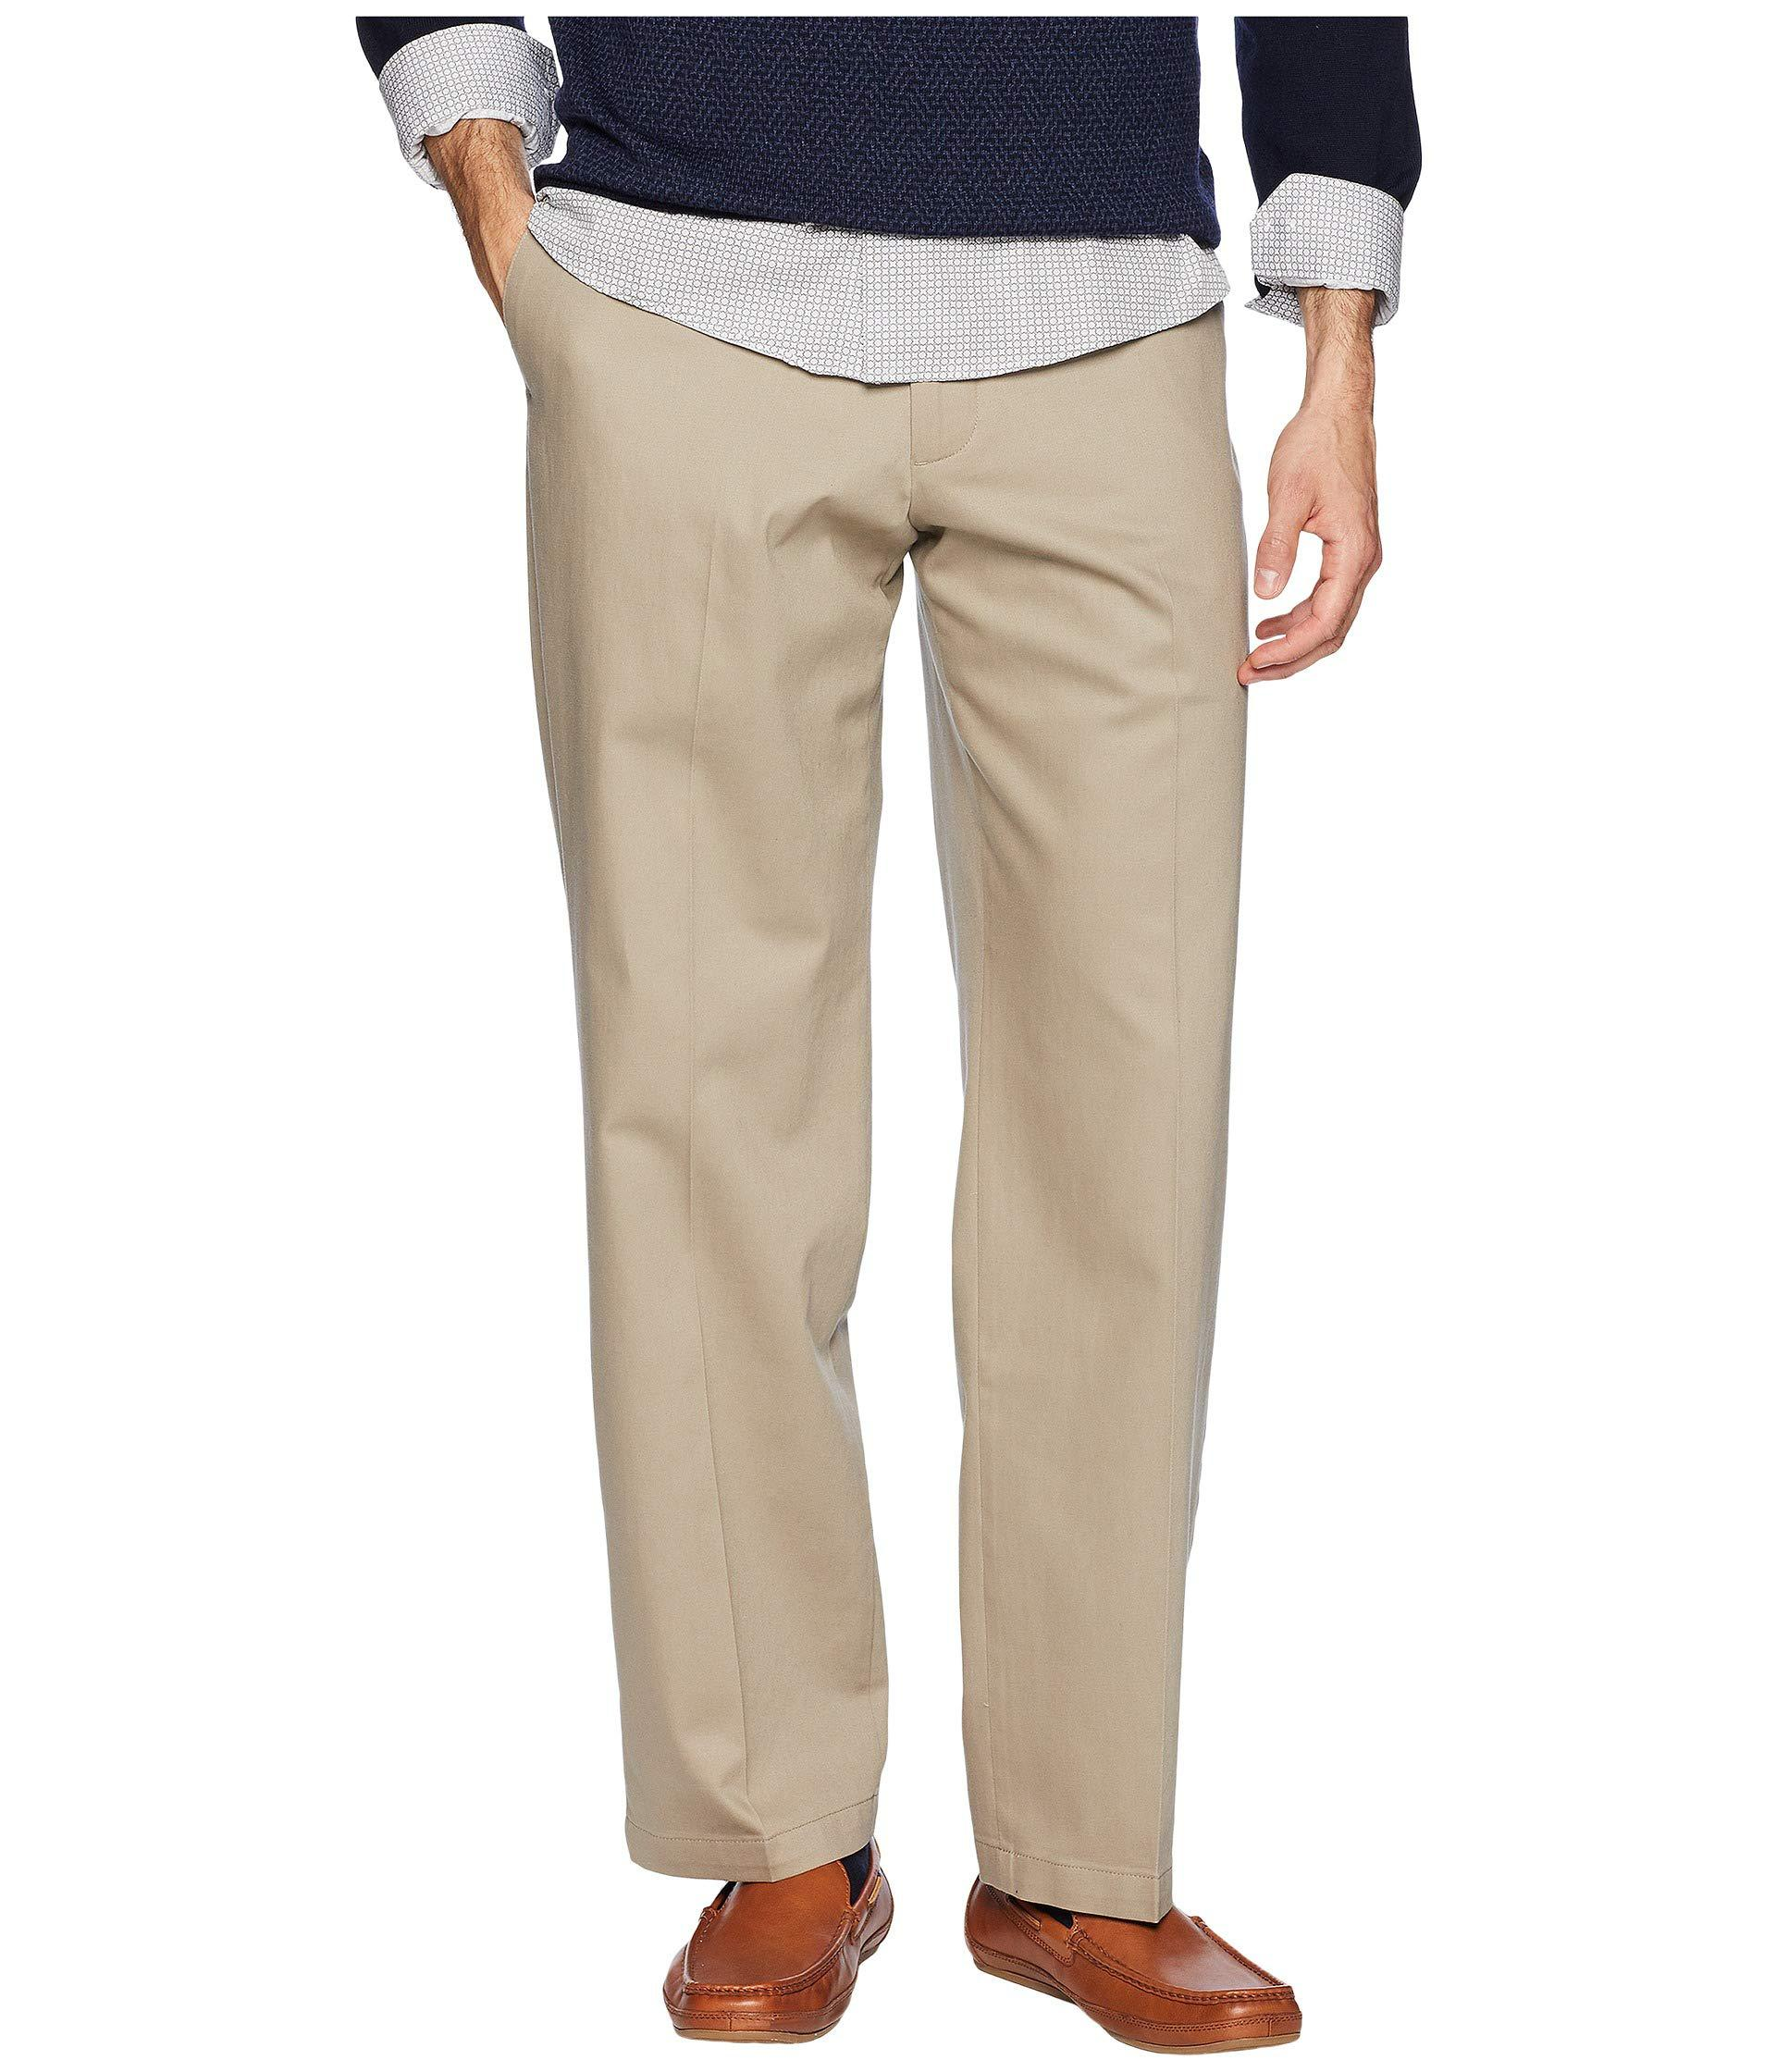 a4a945eb5 Dockers. Natural Relaxed Fit Signature Khaki Lux Cotton Stretch Pants ...